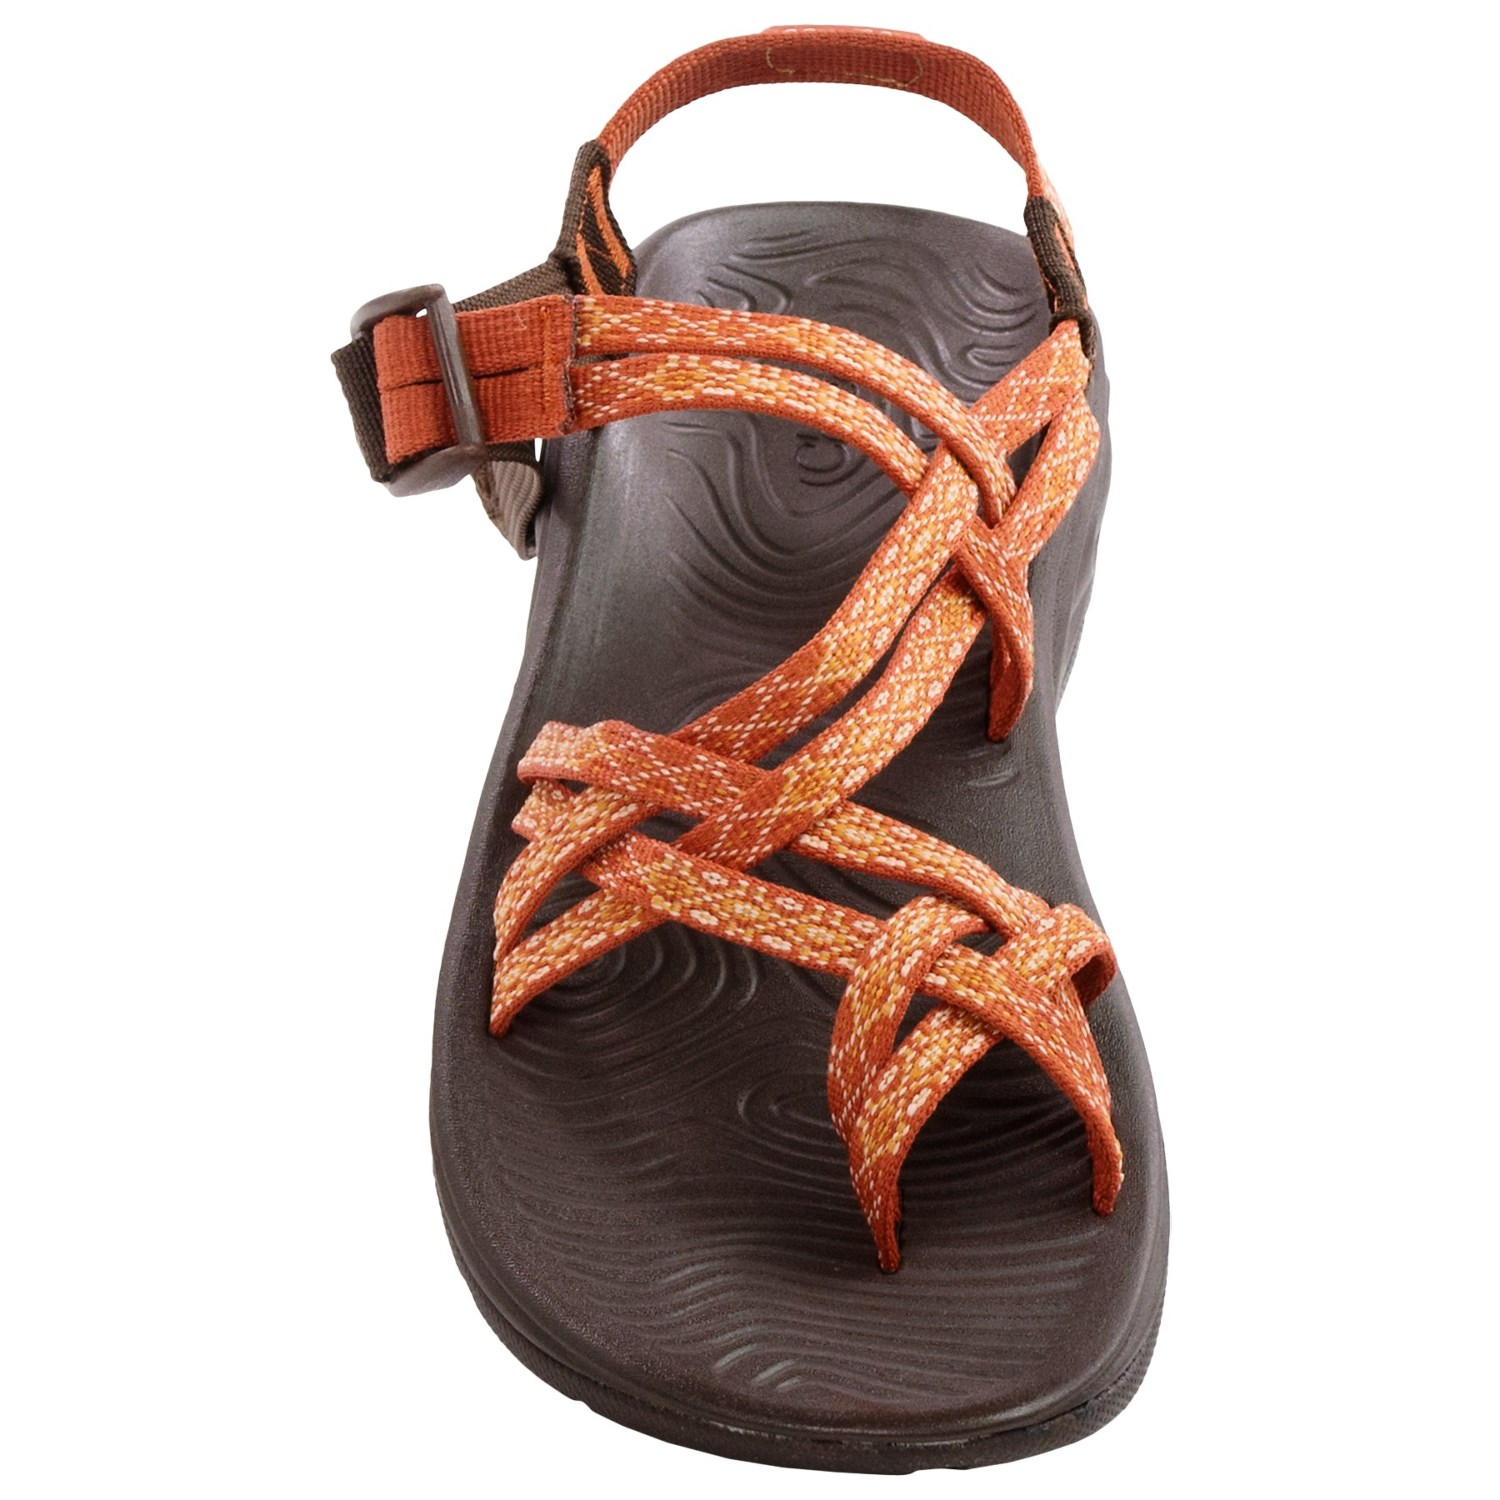 4b01b896df8a Chaco Z Volv X2 Sport Sandals (For Women) - Save 40%